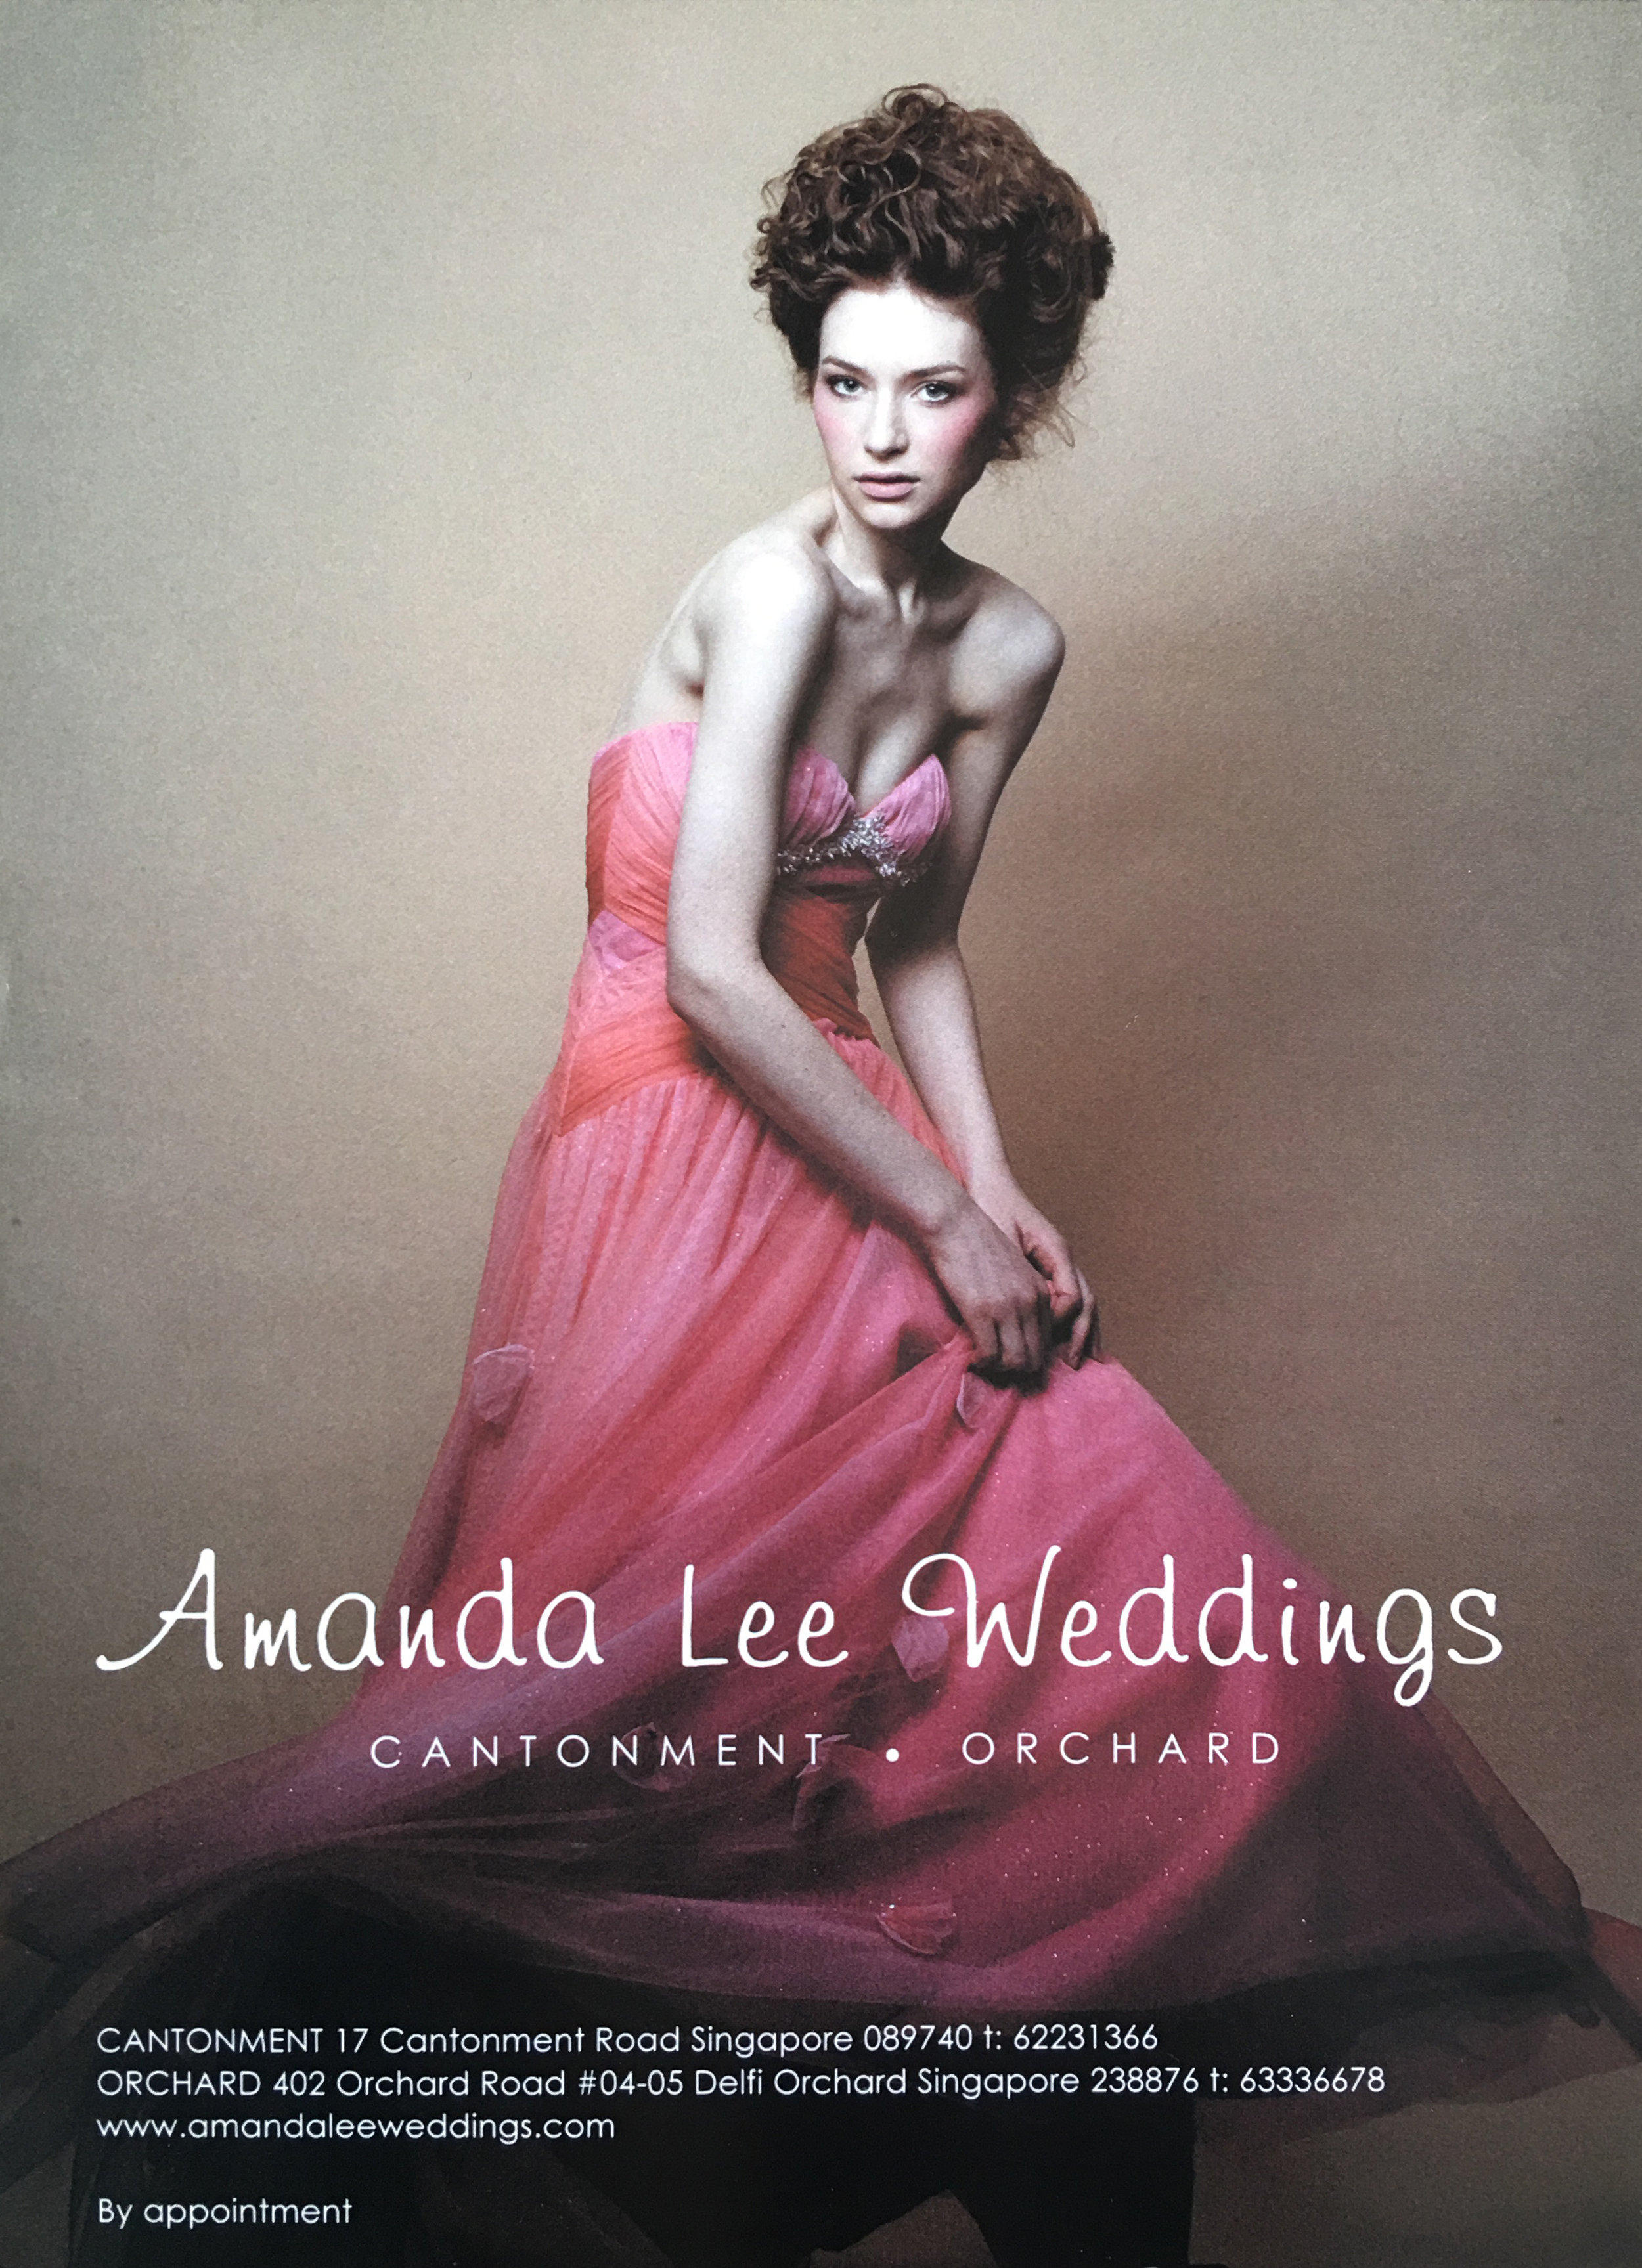 - As compared to her choice of colours in the early 2000s, these pieces here spoke a great deal of sweet, sultry, and dramatic all at once. Brides love the bit of drama in the designs, great to bring out their inner personality, yet not losing the poise of a Queen.